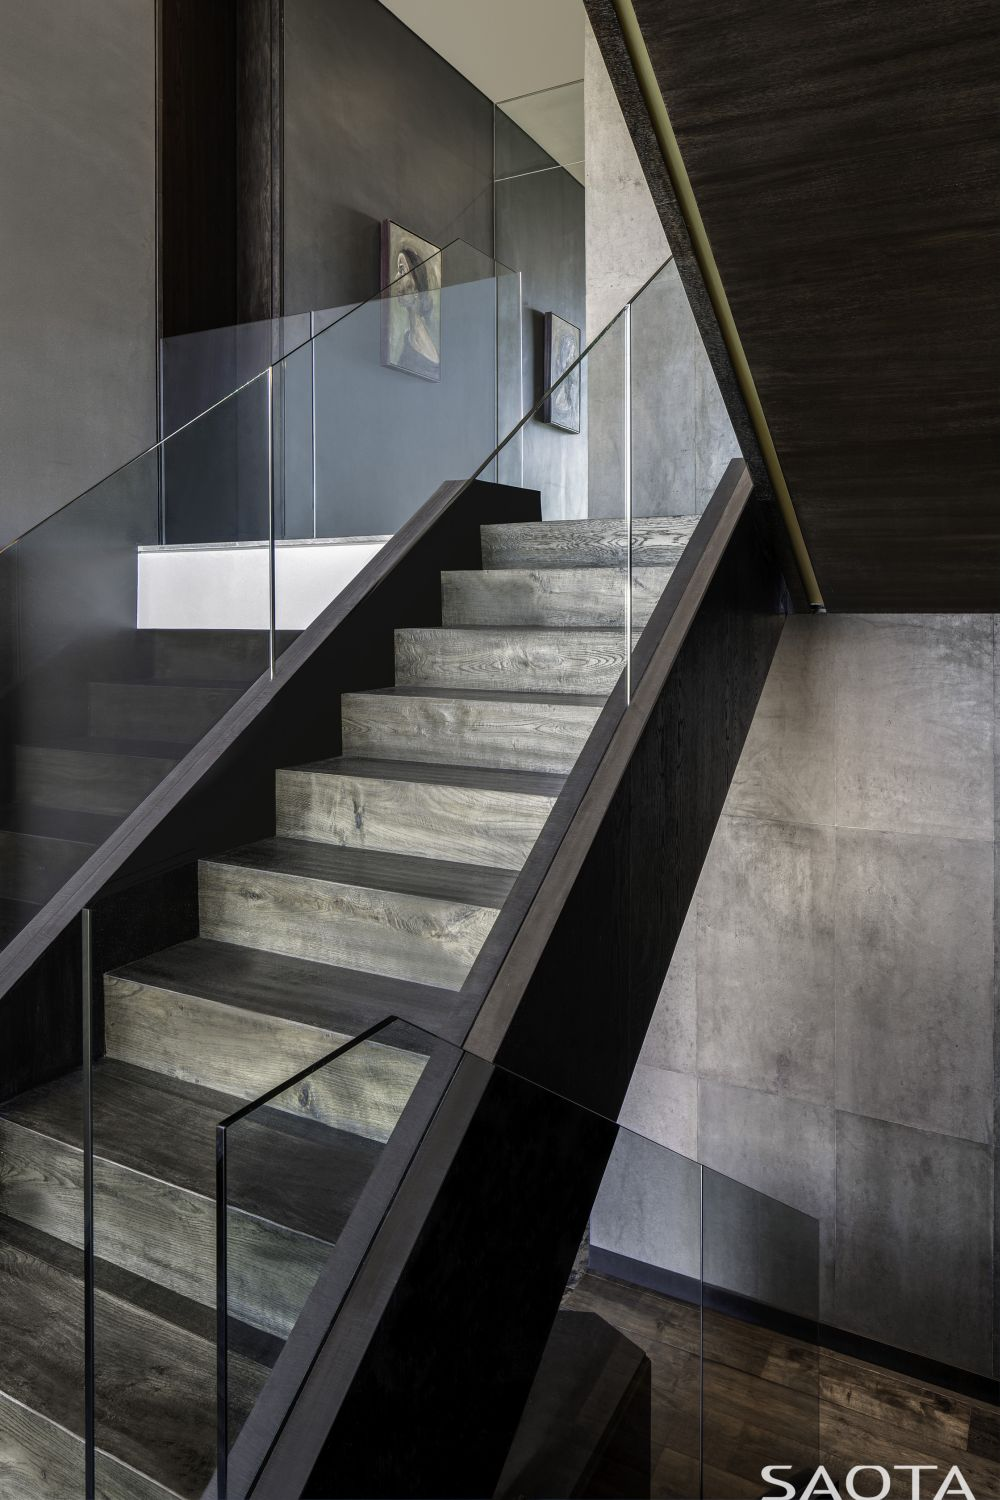 The timber staircase puts en emphasis on the natural beauty and grain of the wood